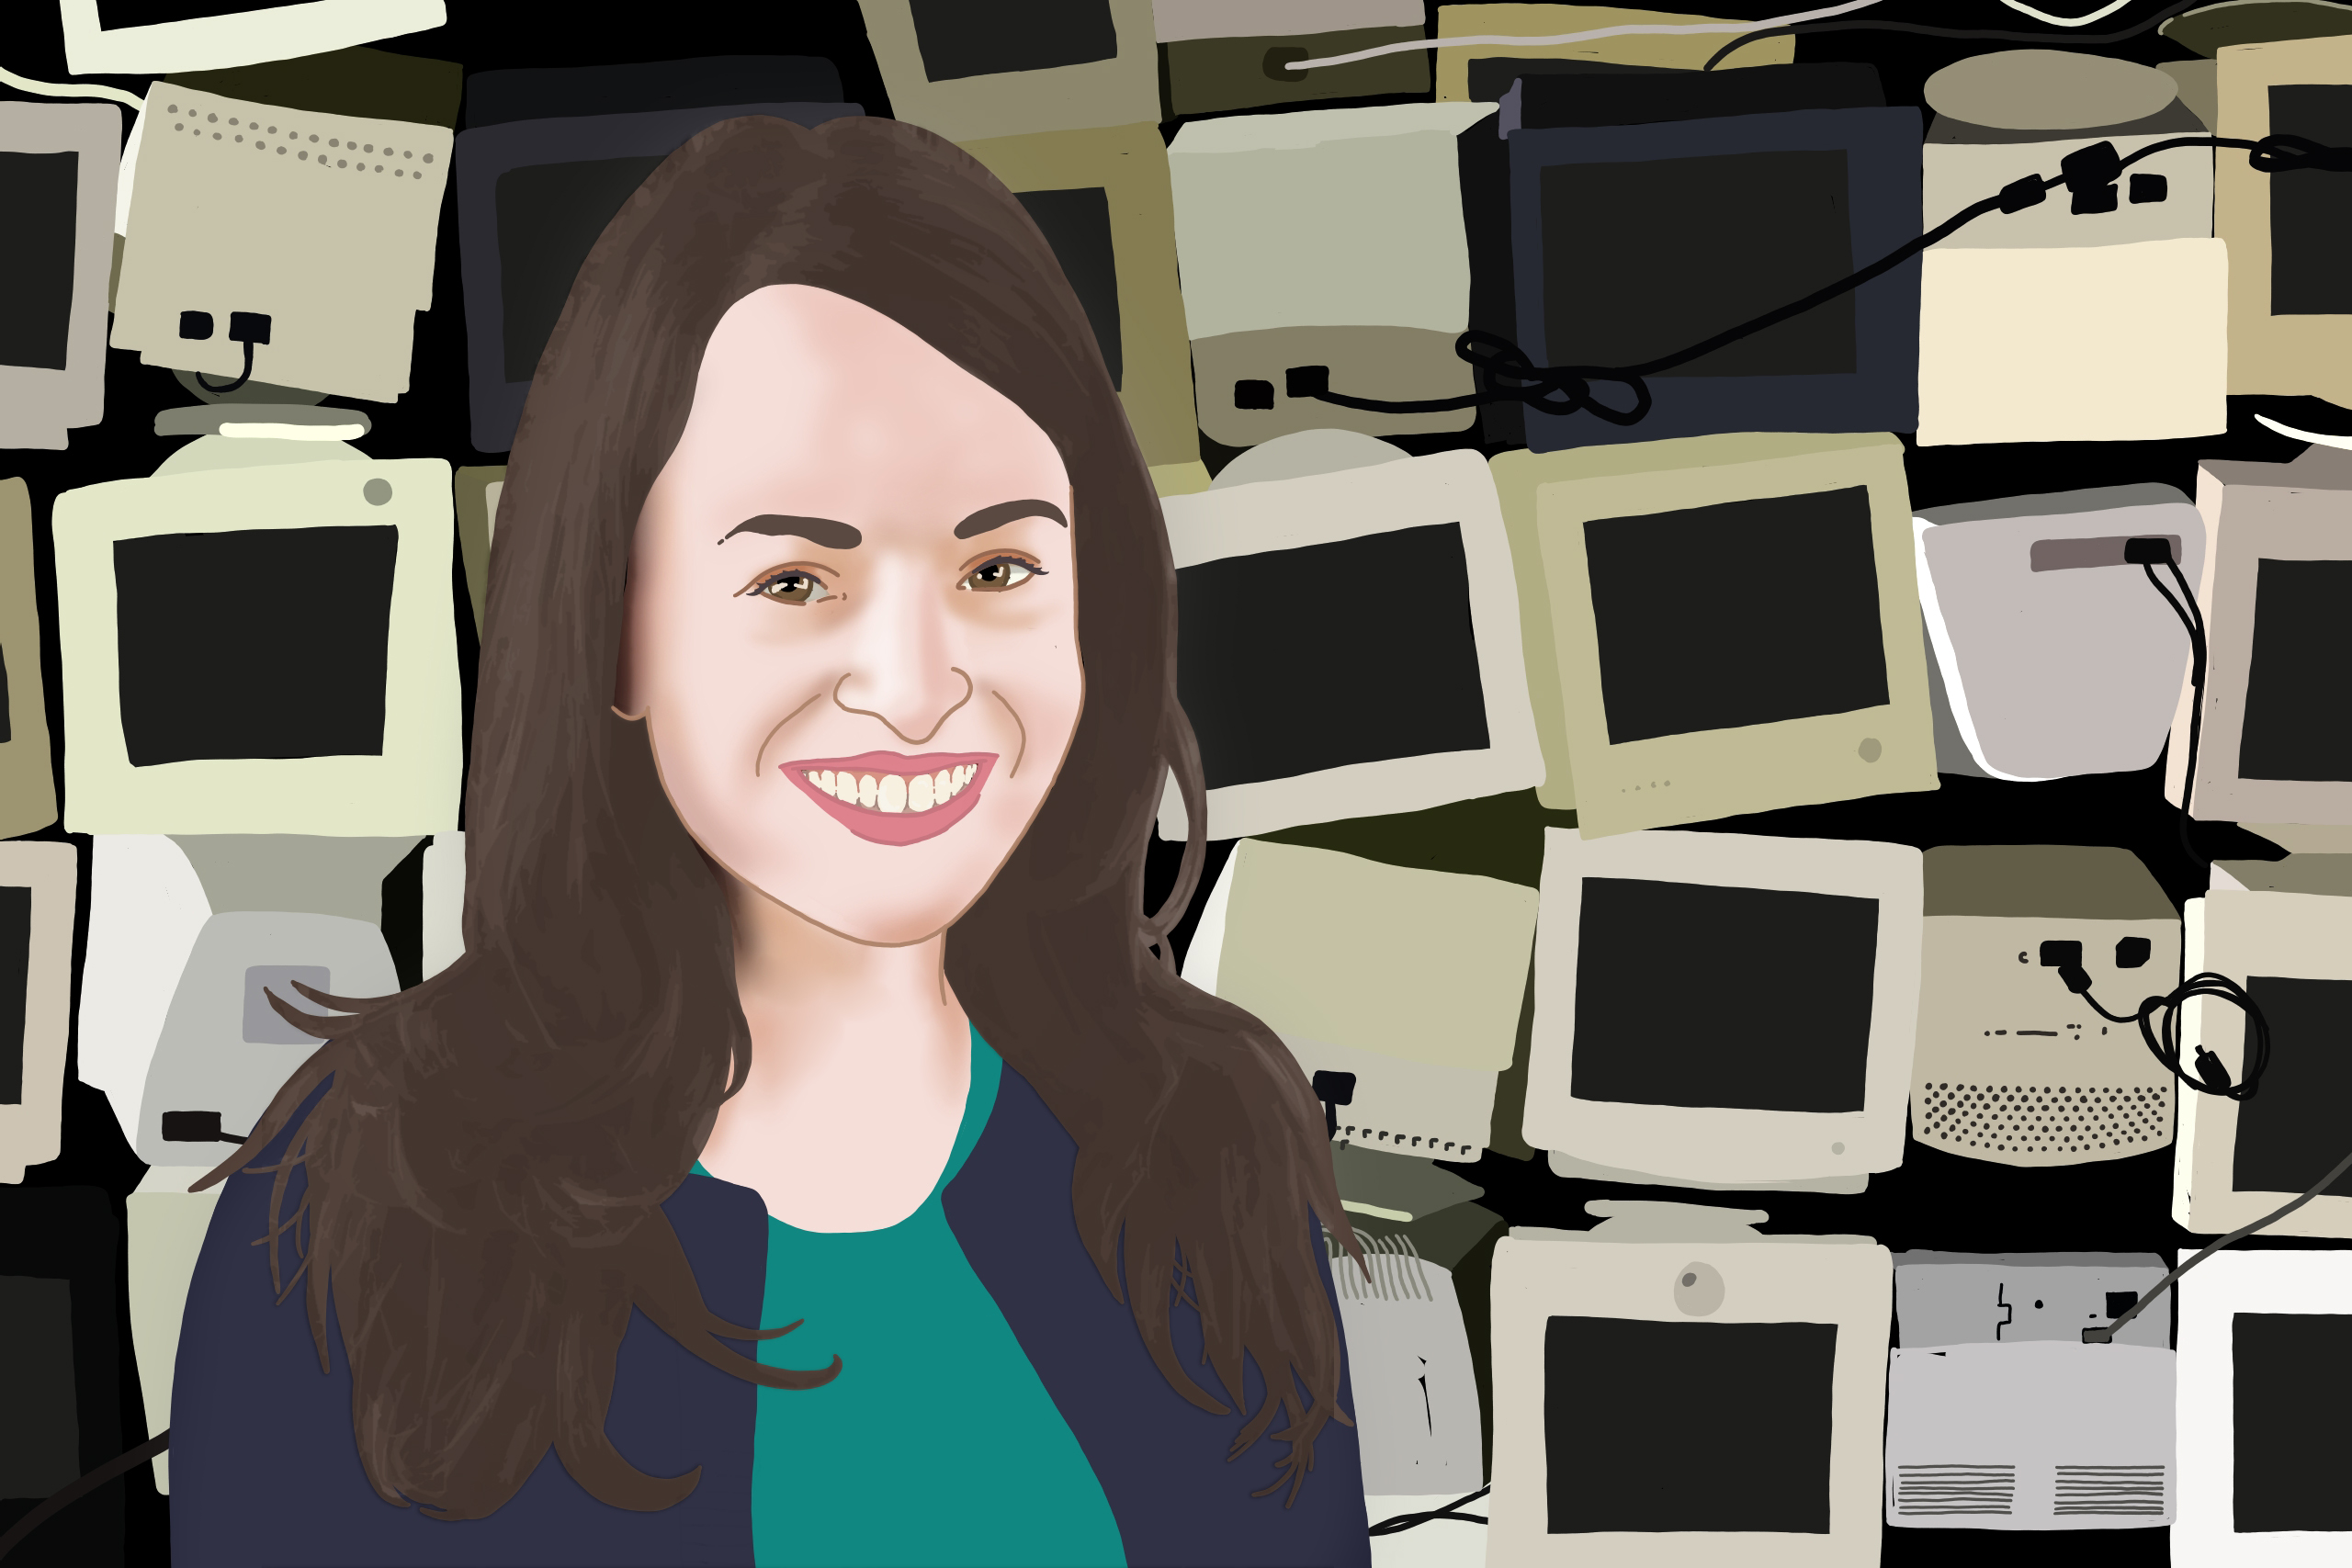 an illustration of Alice Marwick with a bunch of old computers behind her